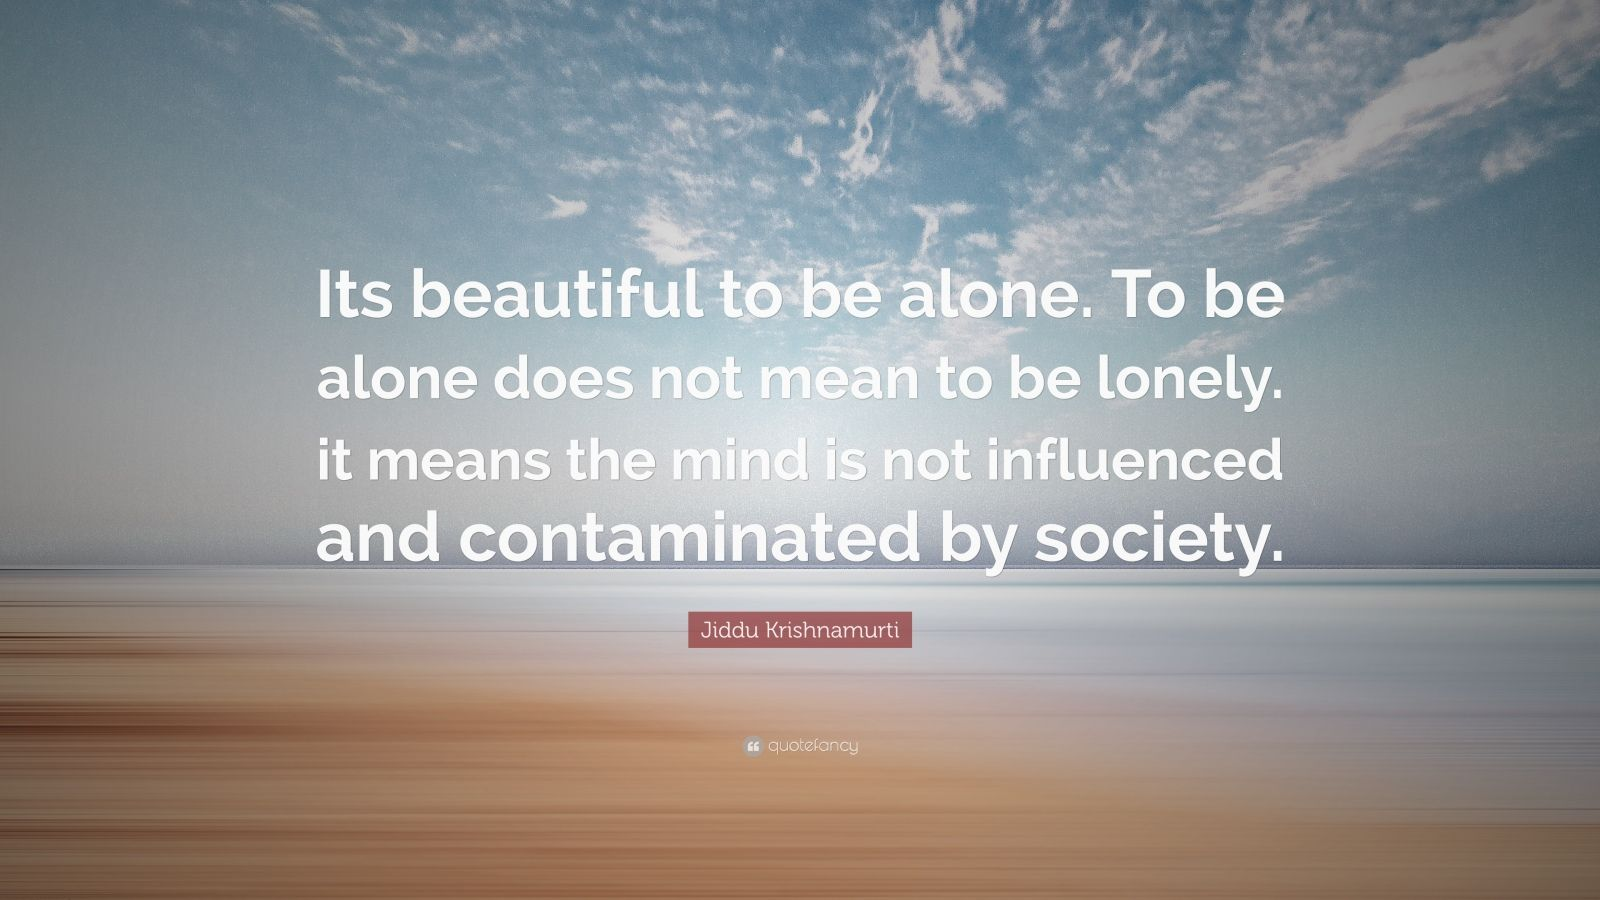 """Jiddu Krishnamurti Quote: """"Its beautiful to be alone. To be alone does not mean to be lonely. it means the mind is not influenced and contaminated by society."""""""